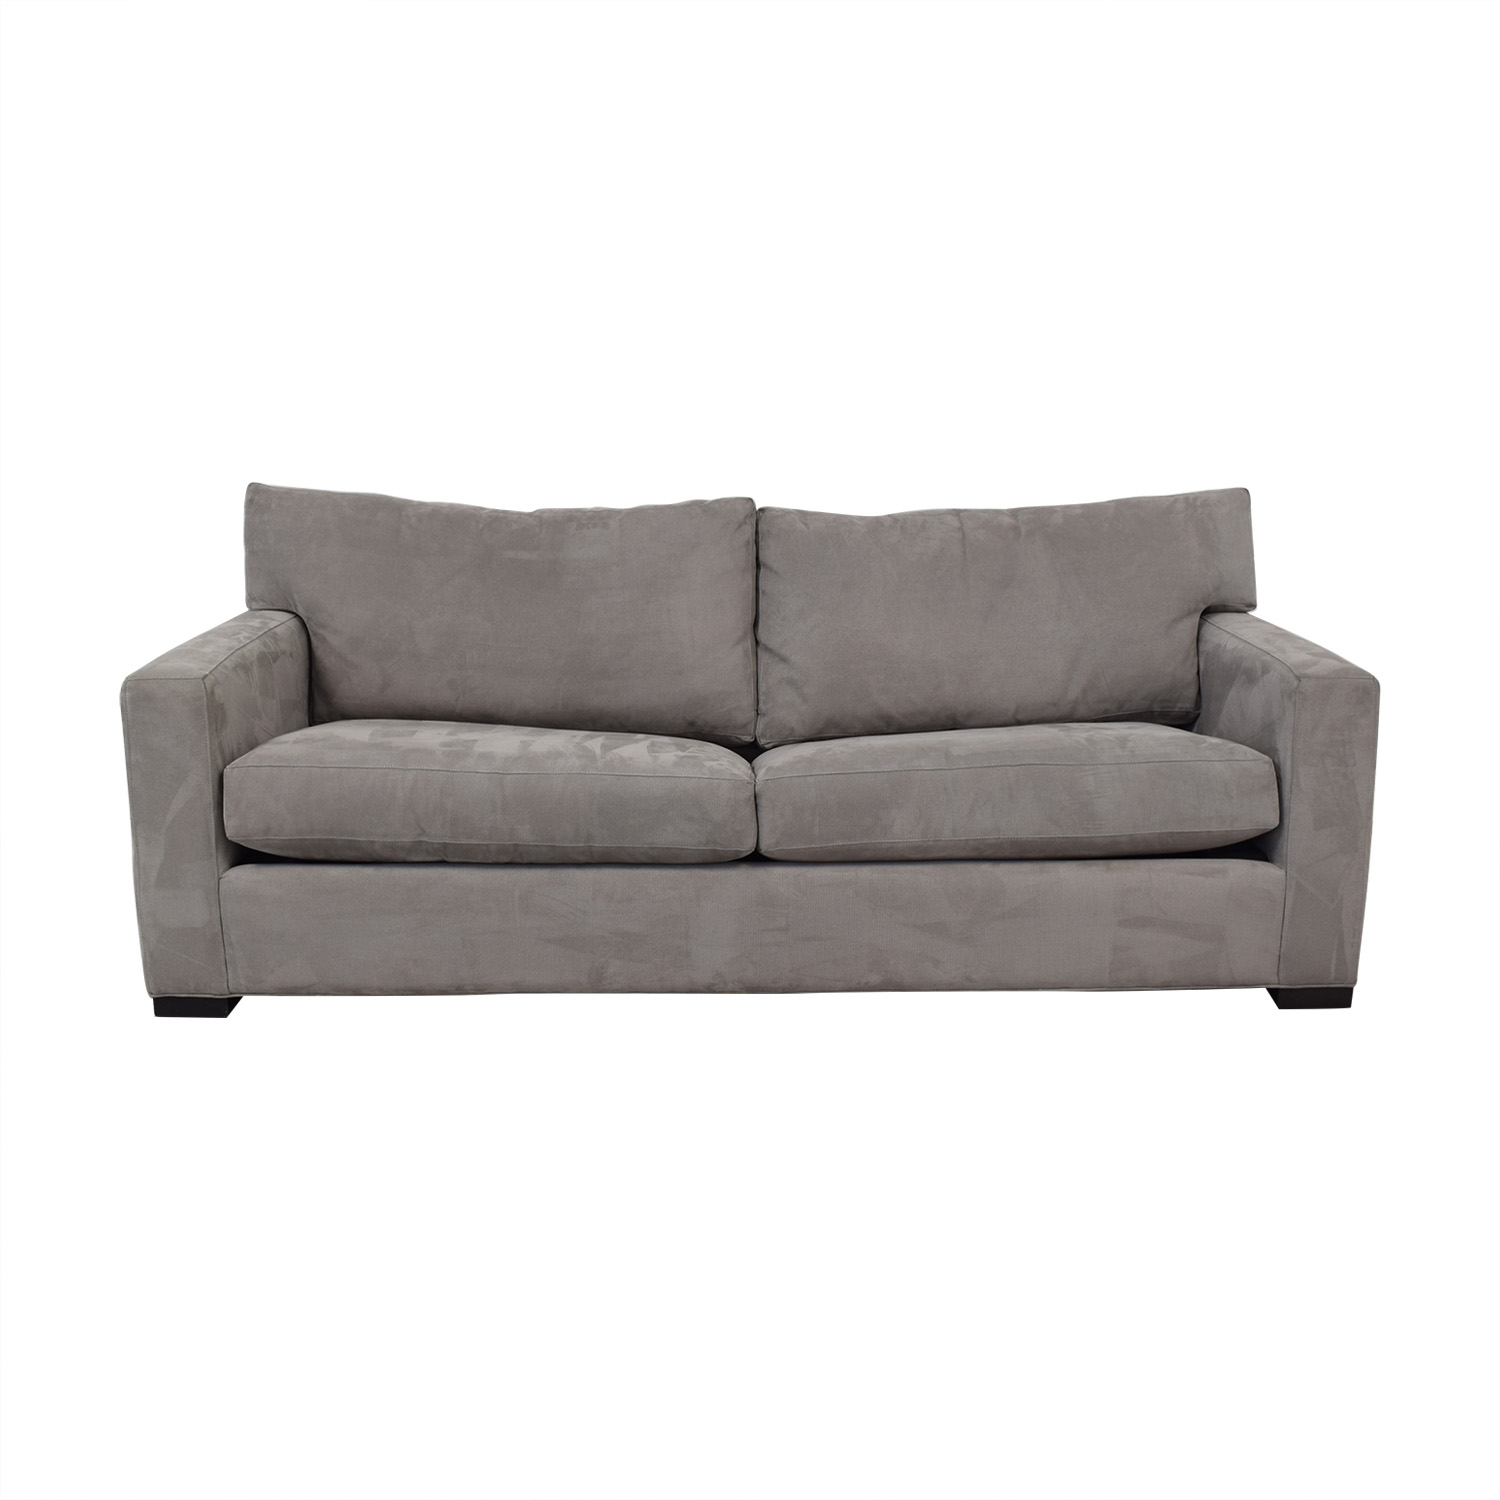 buy Crate & Barrel Axis II 2-Seat Queen Grey Sleeper Sofa Crate & Barrel Sofas